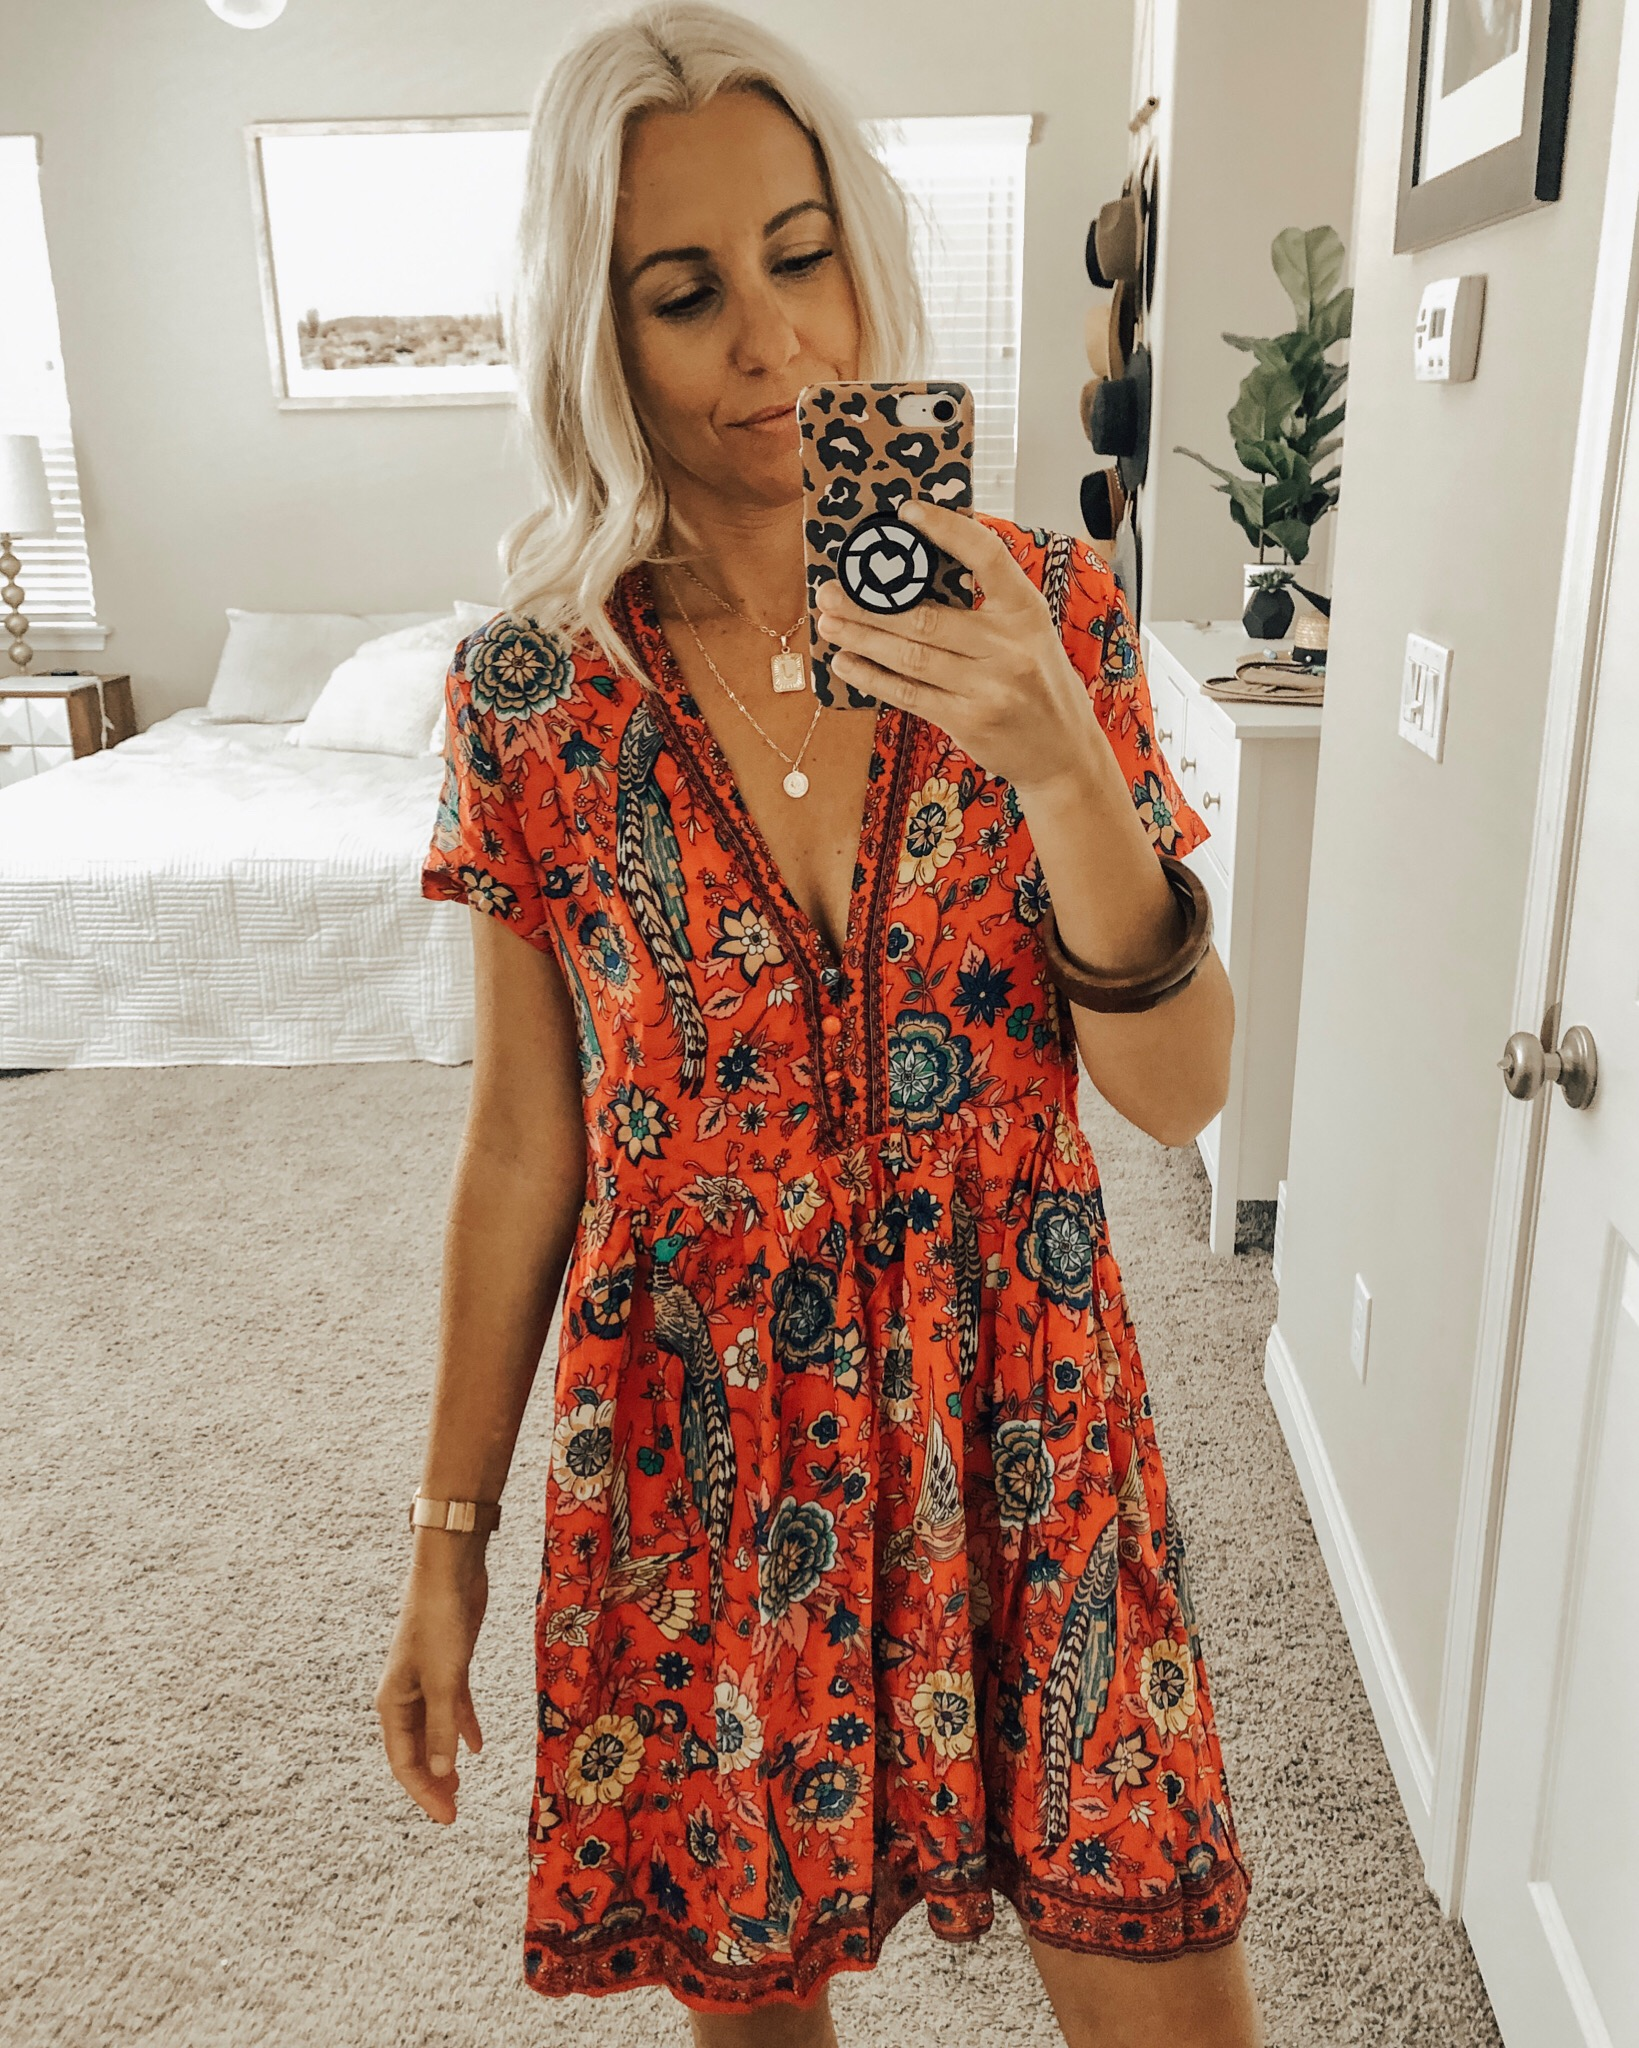 MAY TOP 10- Jaclyn De Leon Style + This month was all about the Amazon finds! 8 out of the top 10 were from Amazon and I'm not one bit surprised. This free people dupe is so fun and only $18